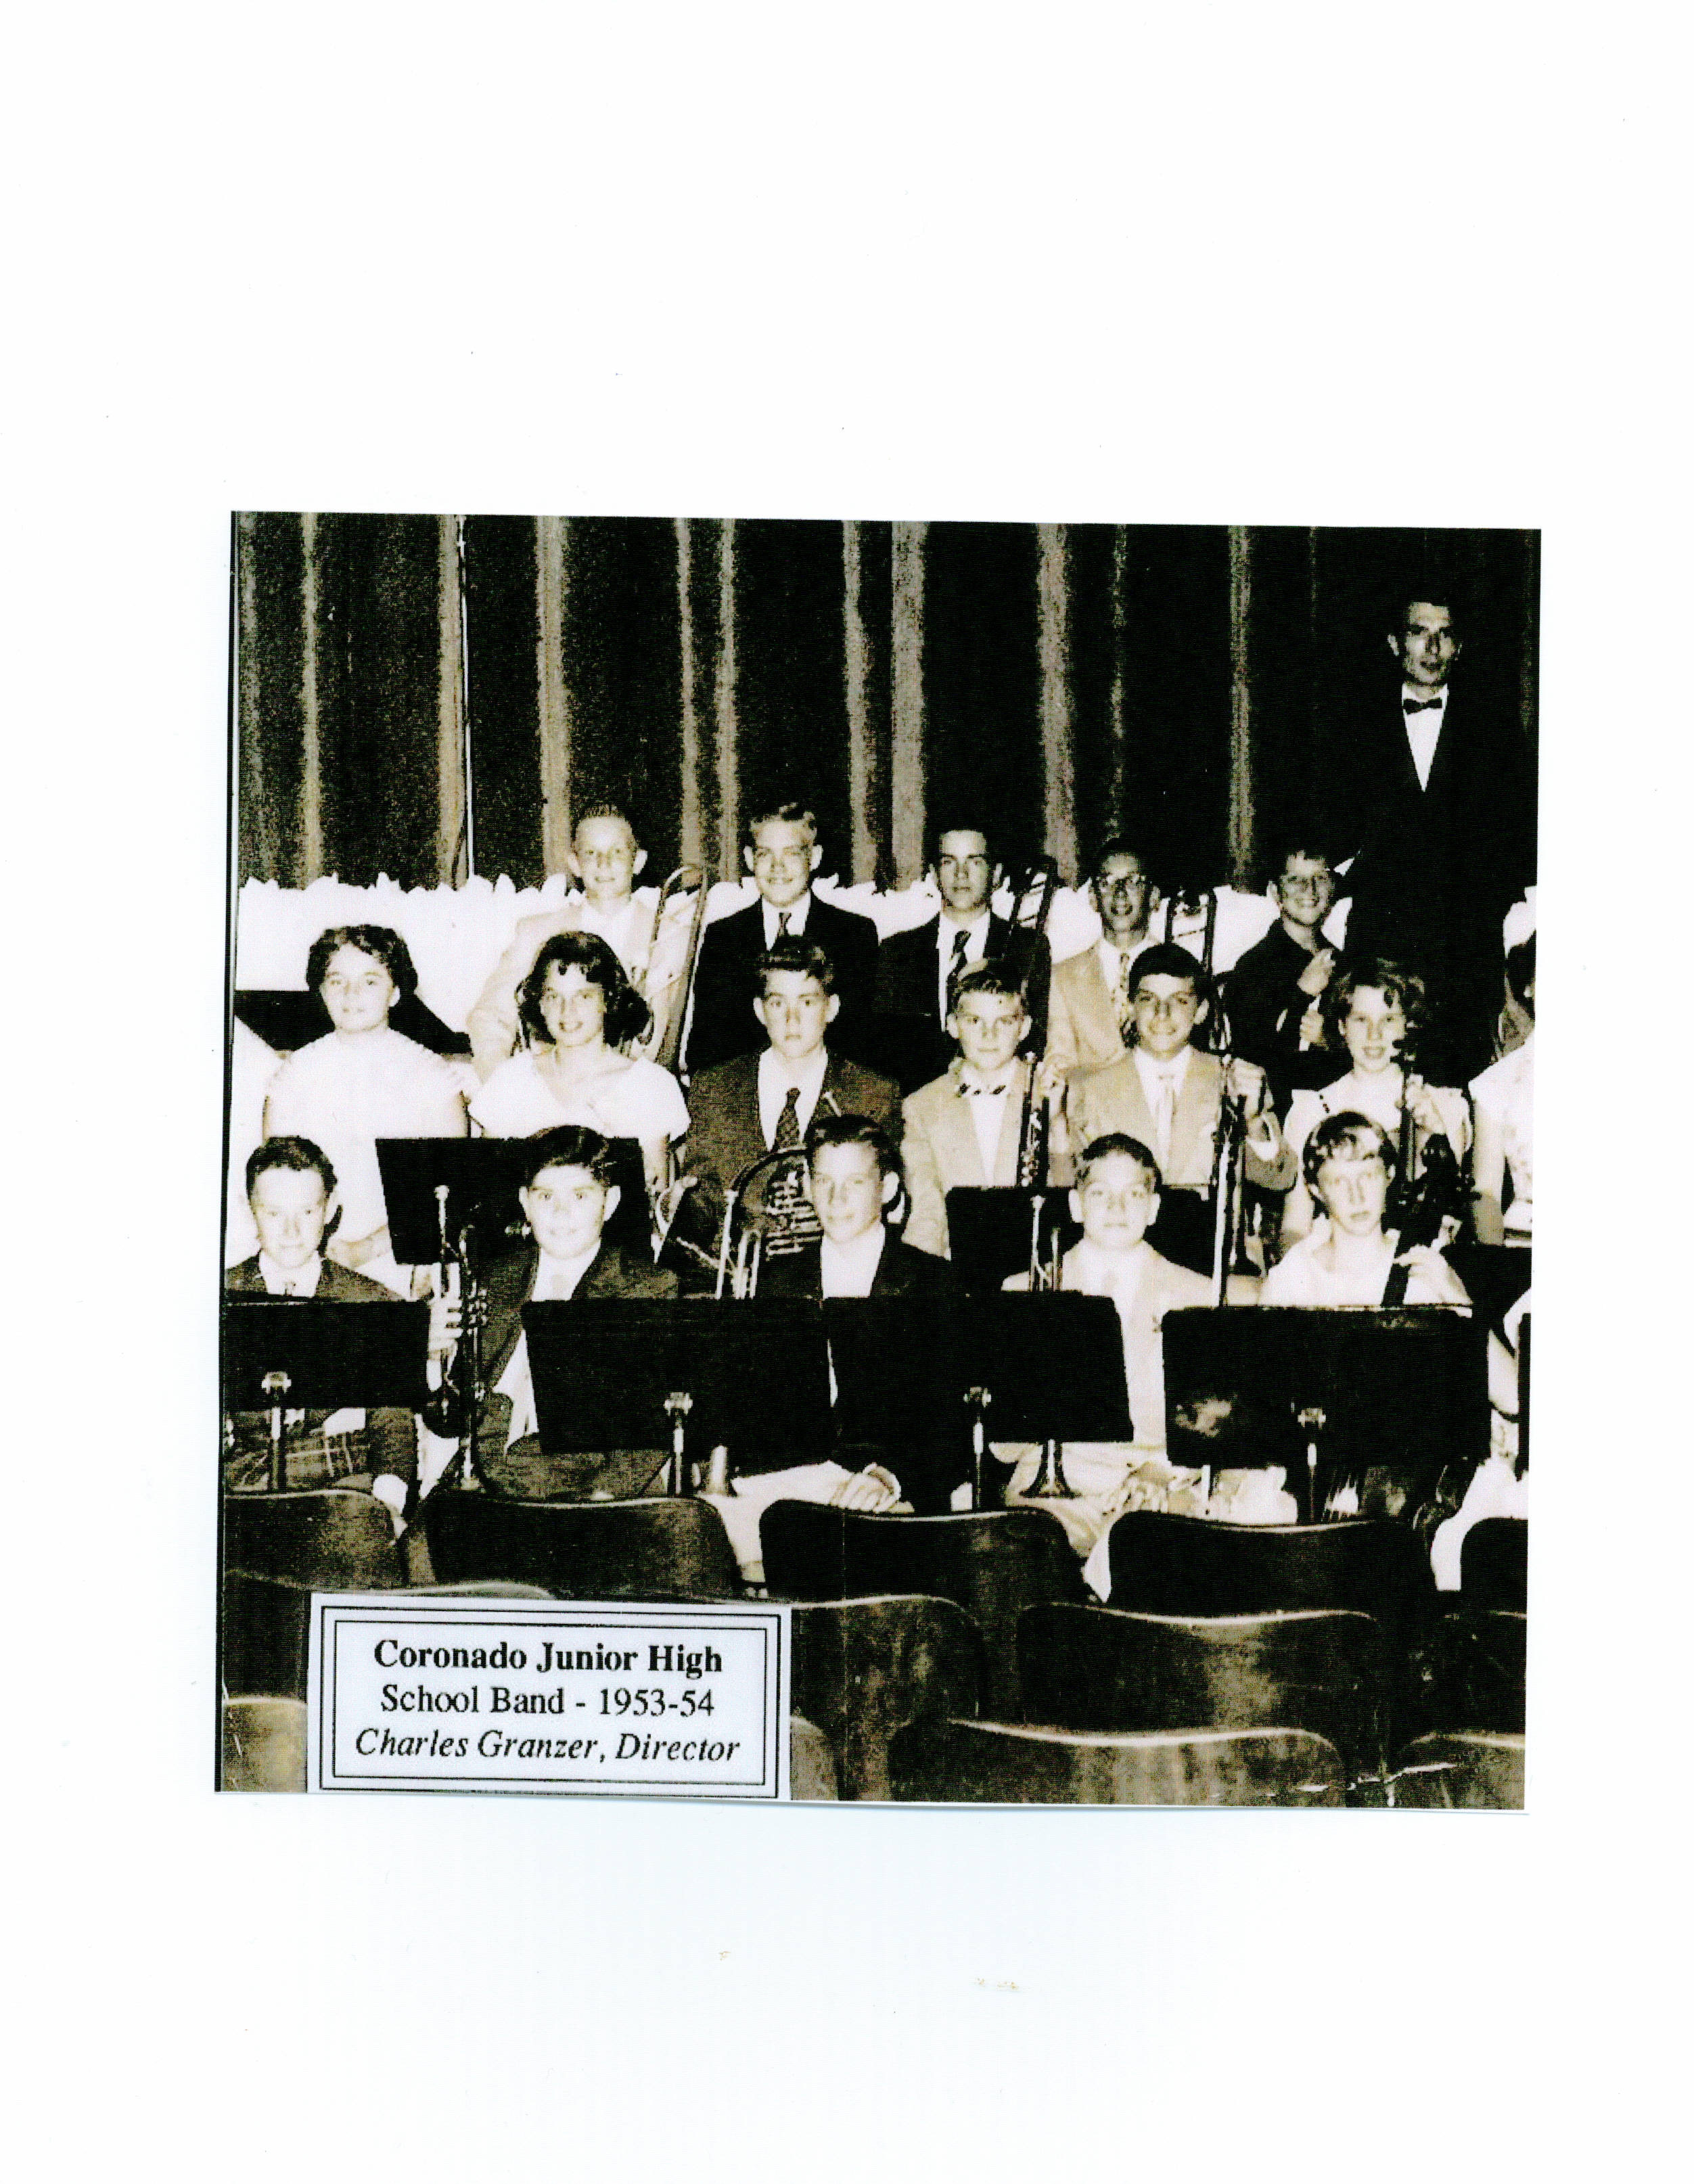 Dan,Tom, and Susan middle front, Kathy and Jan second row, Bob, Jack, Jody,and Brad  Mr. Charles Granzer third row Coronado Jr. High Band 1953-4